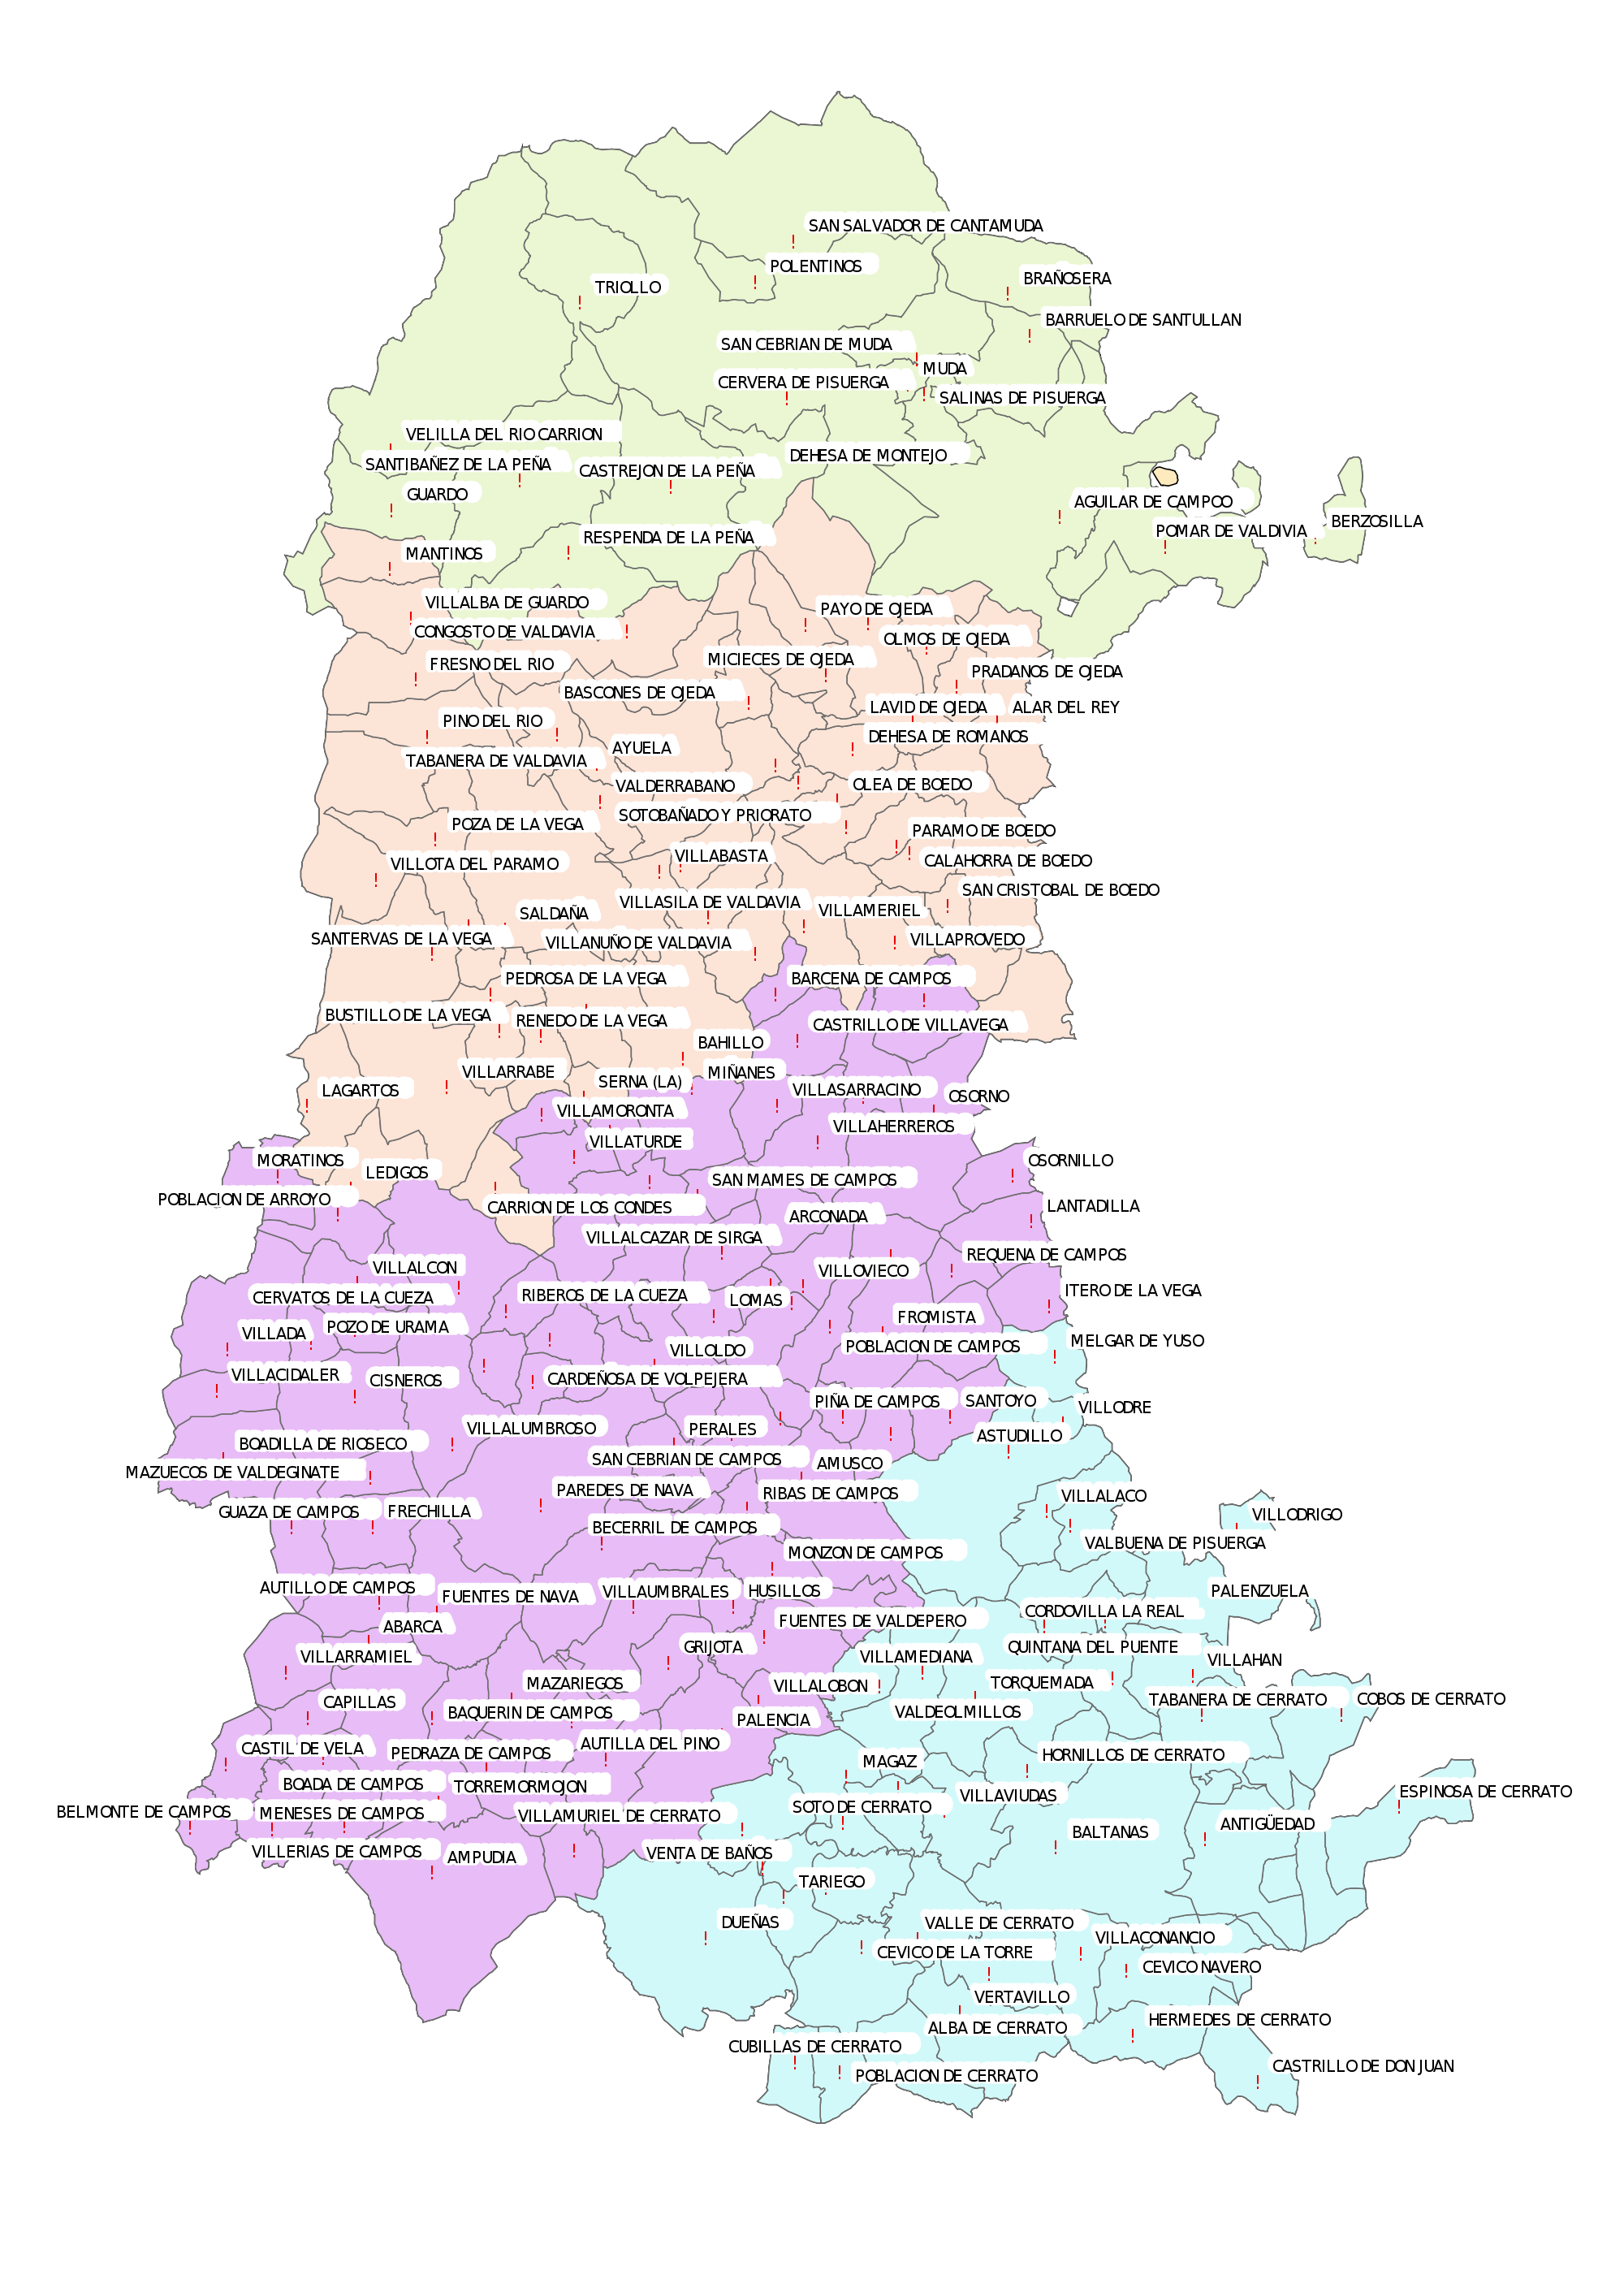 Municipalities with an ayuntamiento in the Province of Palencia 2007